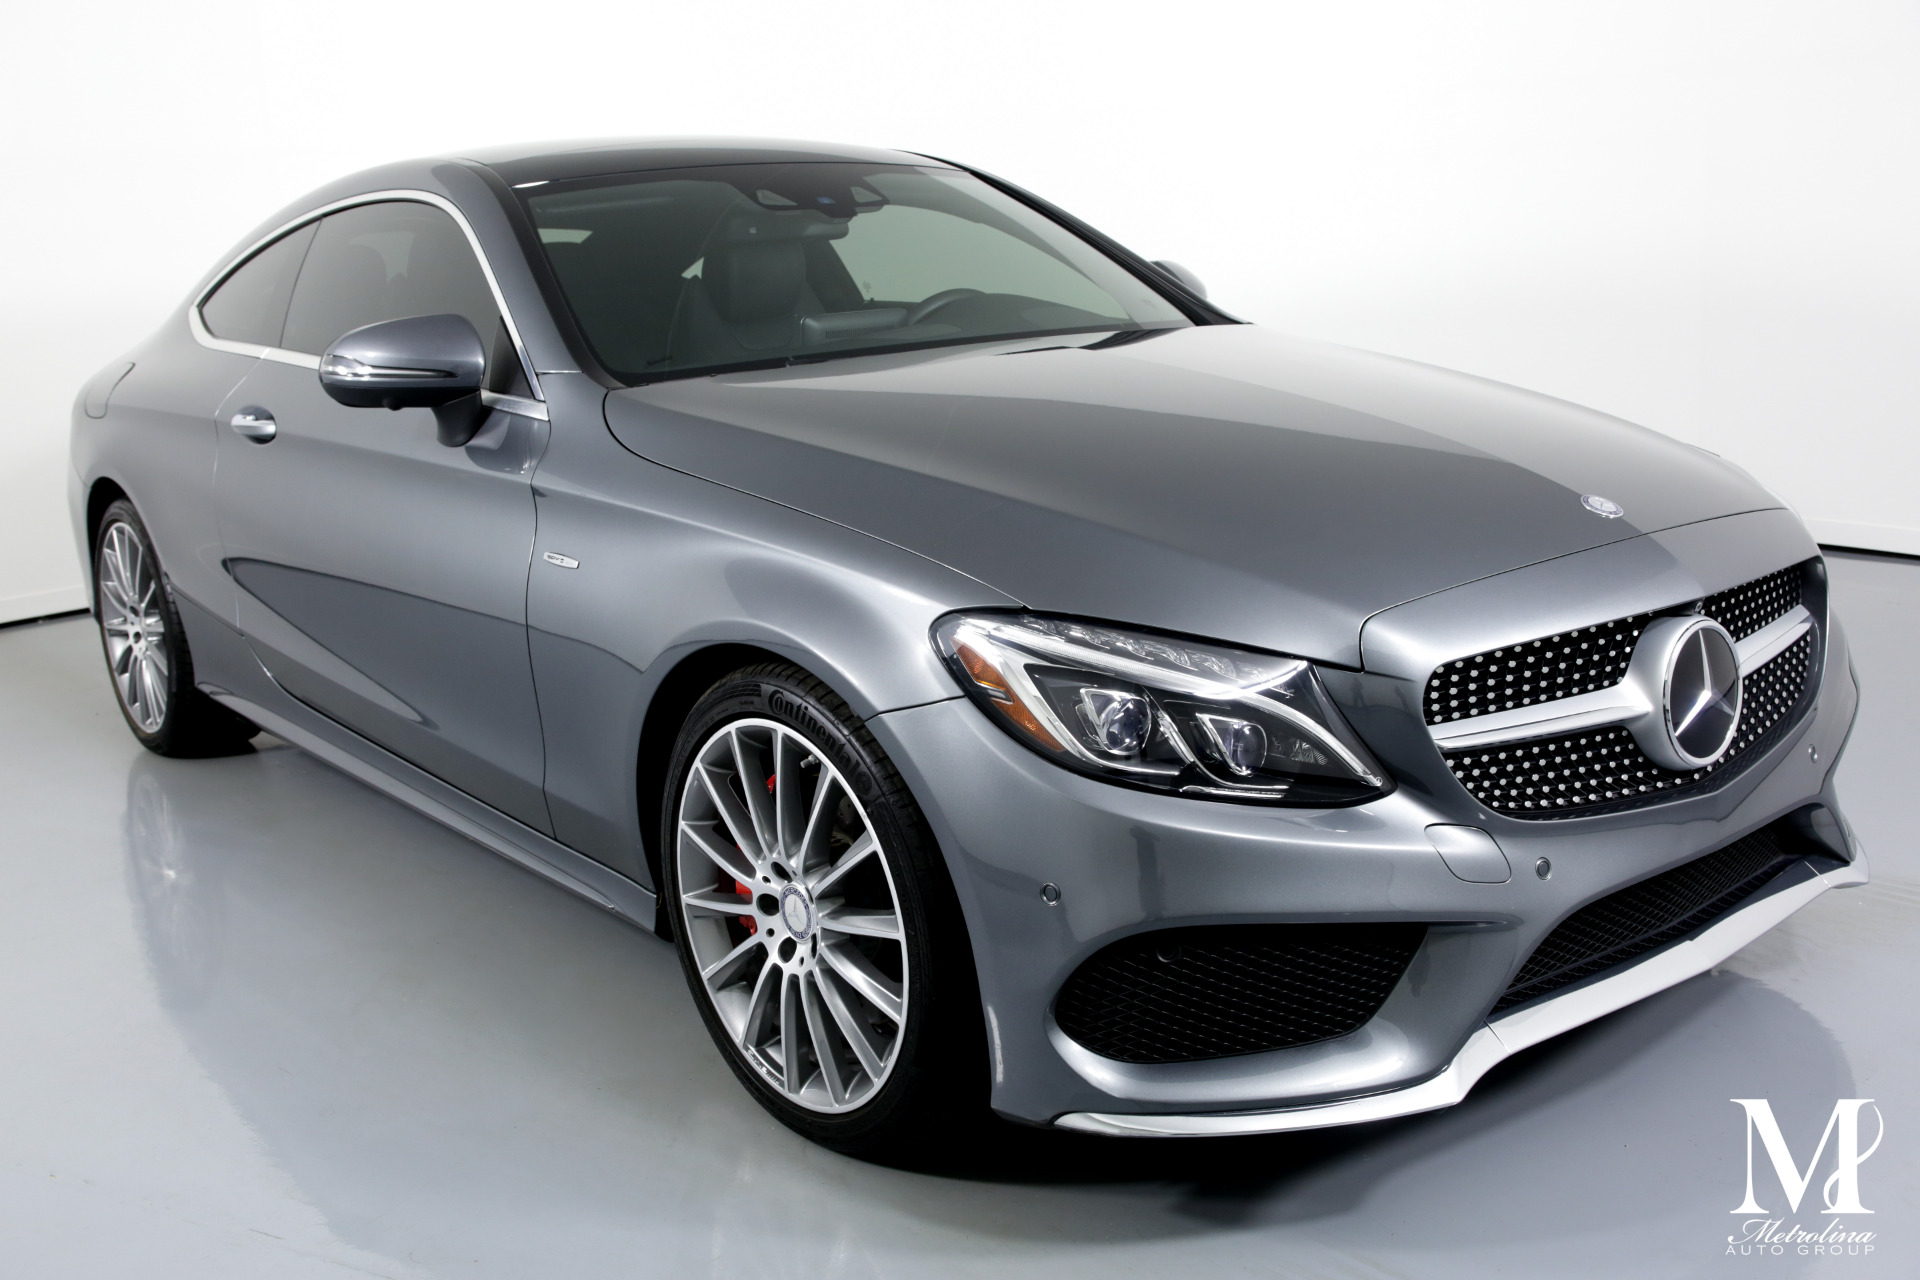 Used 2017 Mercedes-Benz C-Class C 300 for sale Sold at Metrolina Auto Group in Charlotte NC 28217 - 2